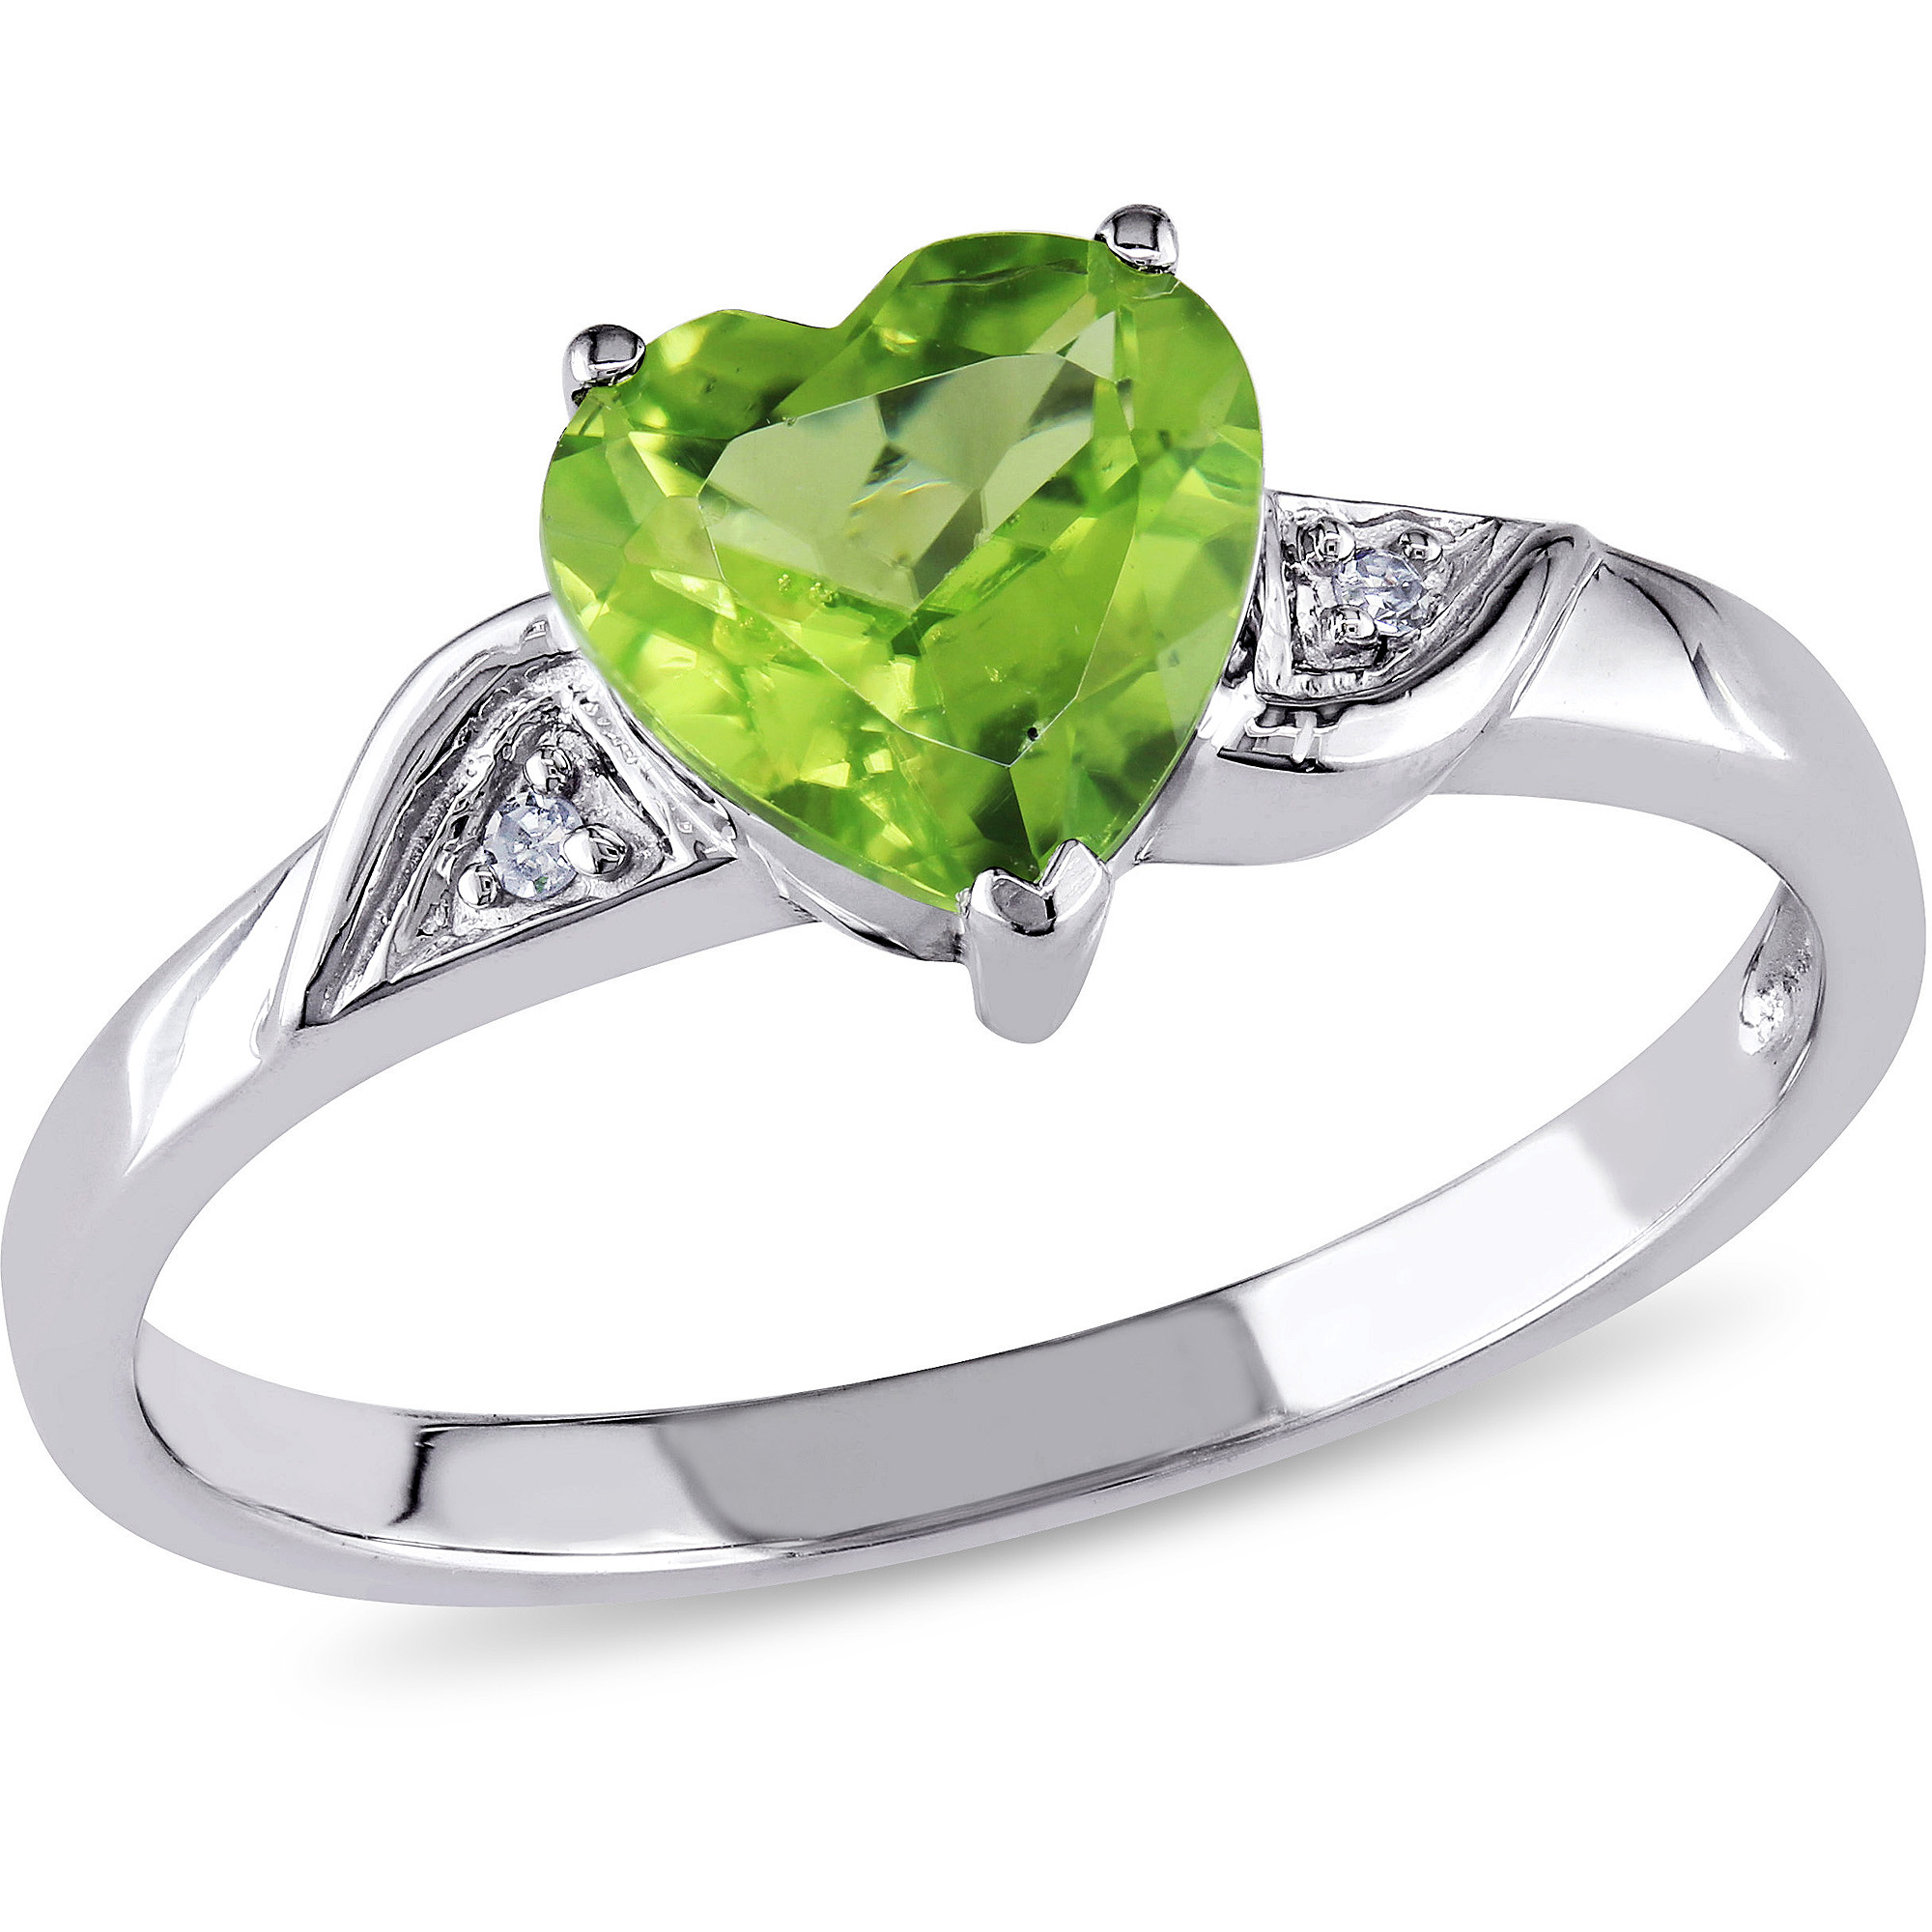 1-1 3 Carat T.G.W. Peridot and Diamond-Accent 10kt White Gold Heart Ring by Delmar Manufacturing LLC